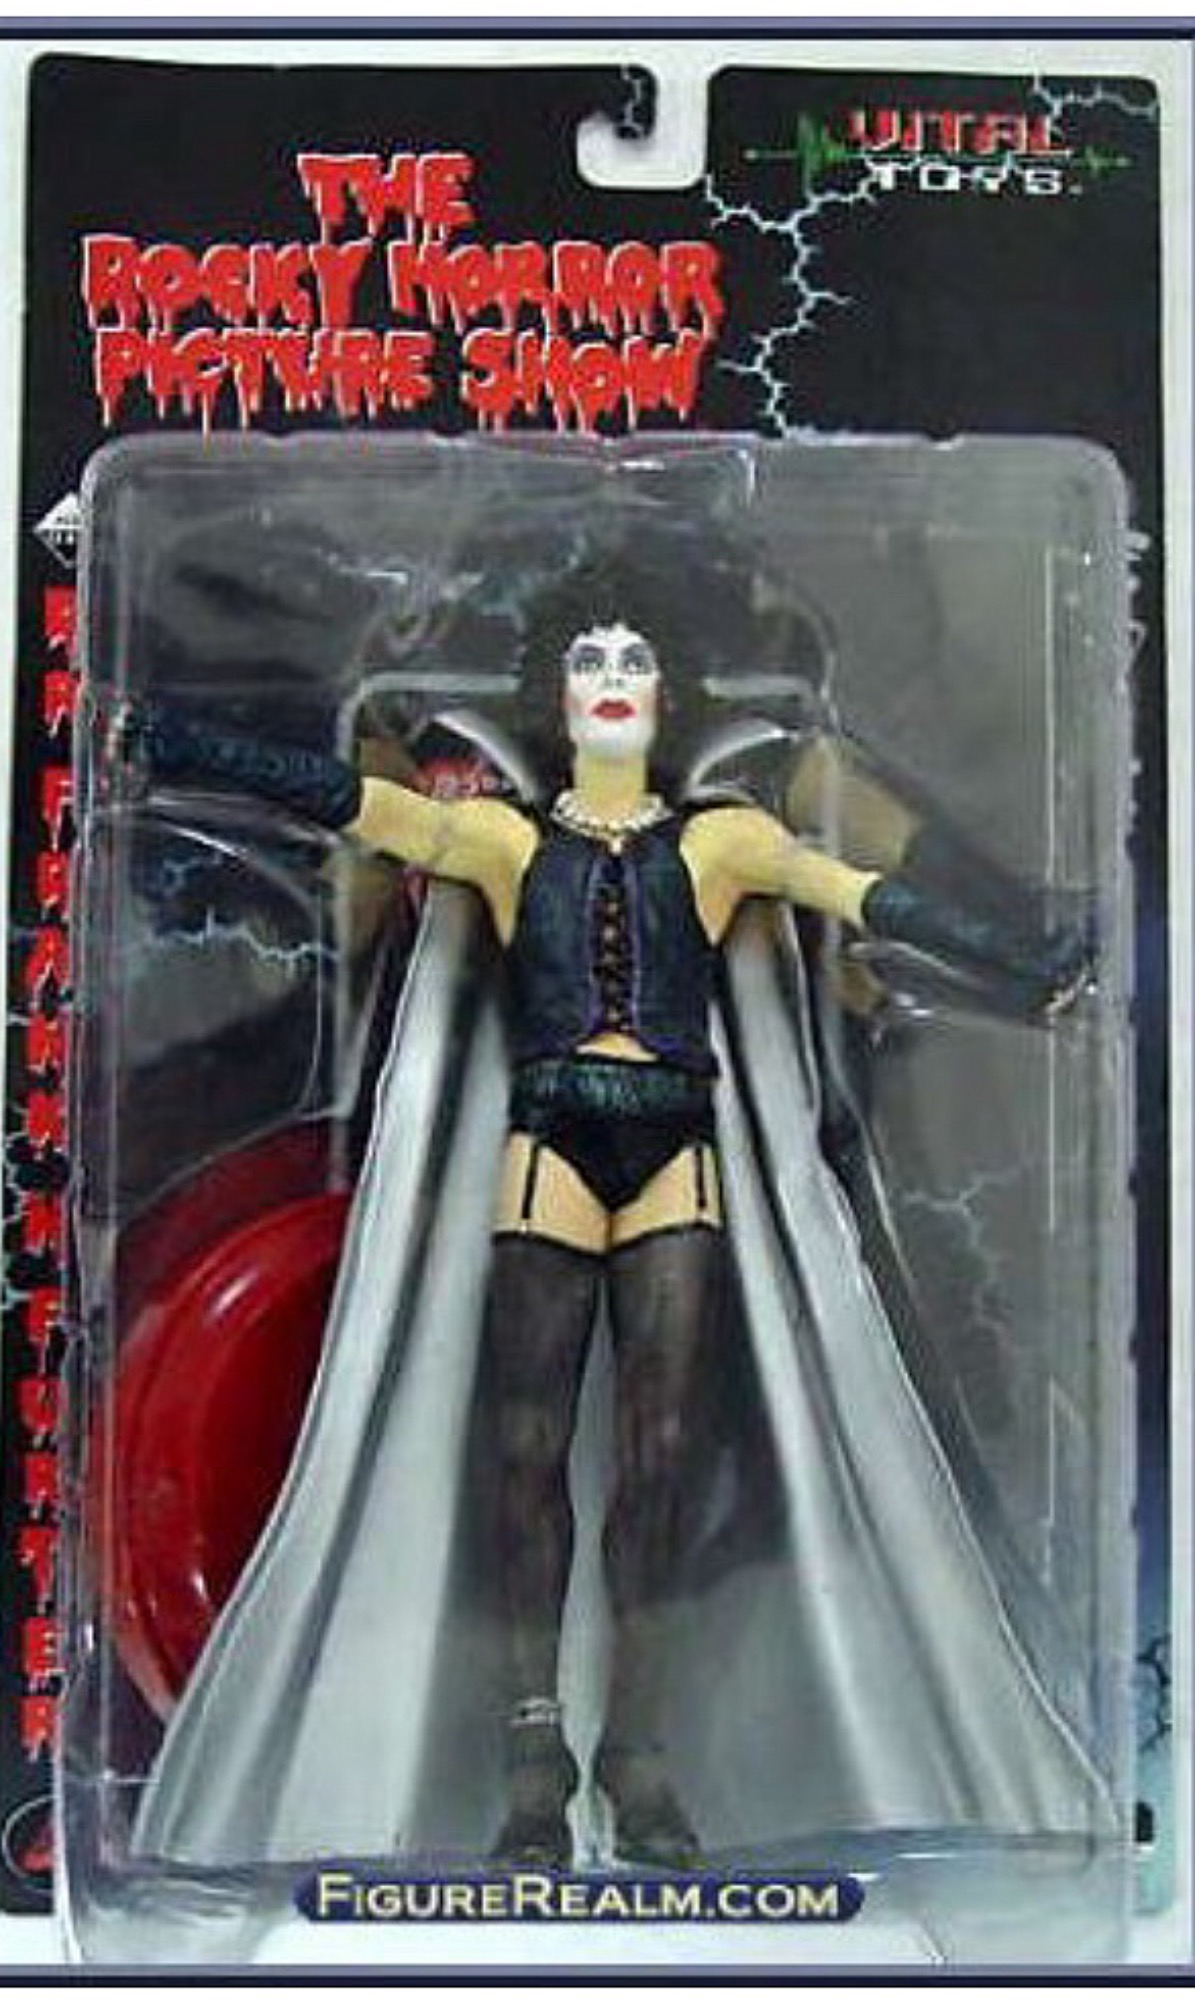 "THE ROCKY HORROR PICTURE SHOW collectable, Dr. Frank N. Furter figure by Vital Toys ""Do your worst, inferior one!"" ~ Dr. Frank N. Furter / 1975, THE ROCKY HORROR PICTURE SHOW"